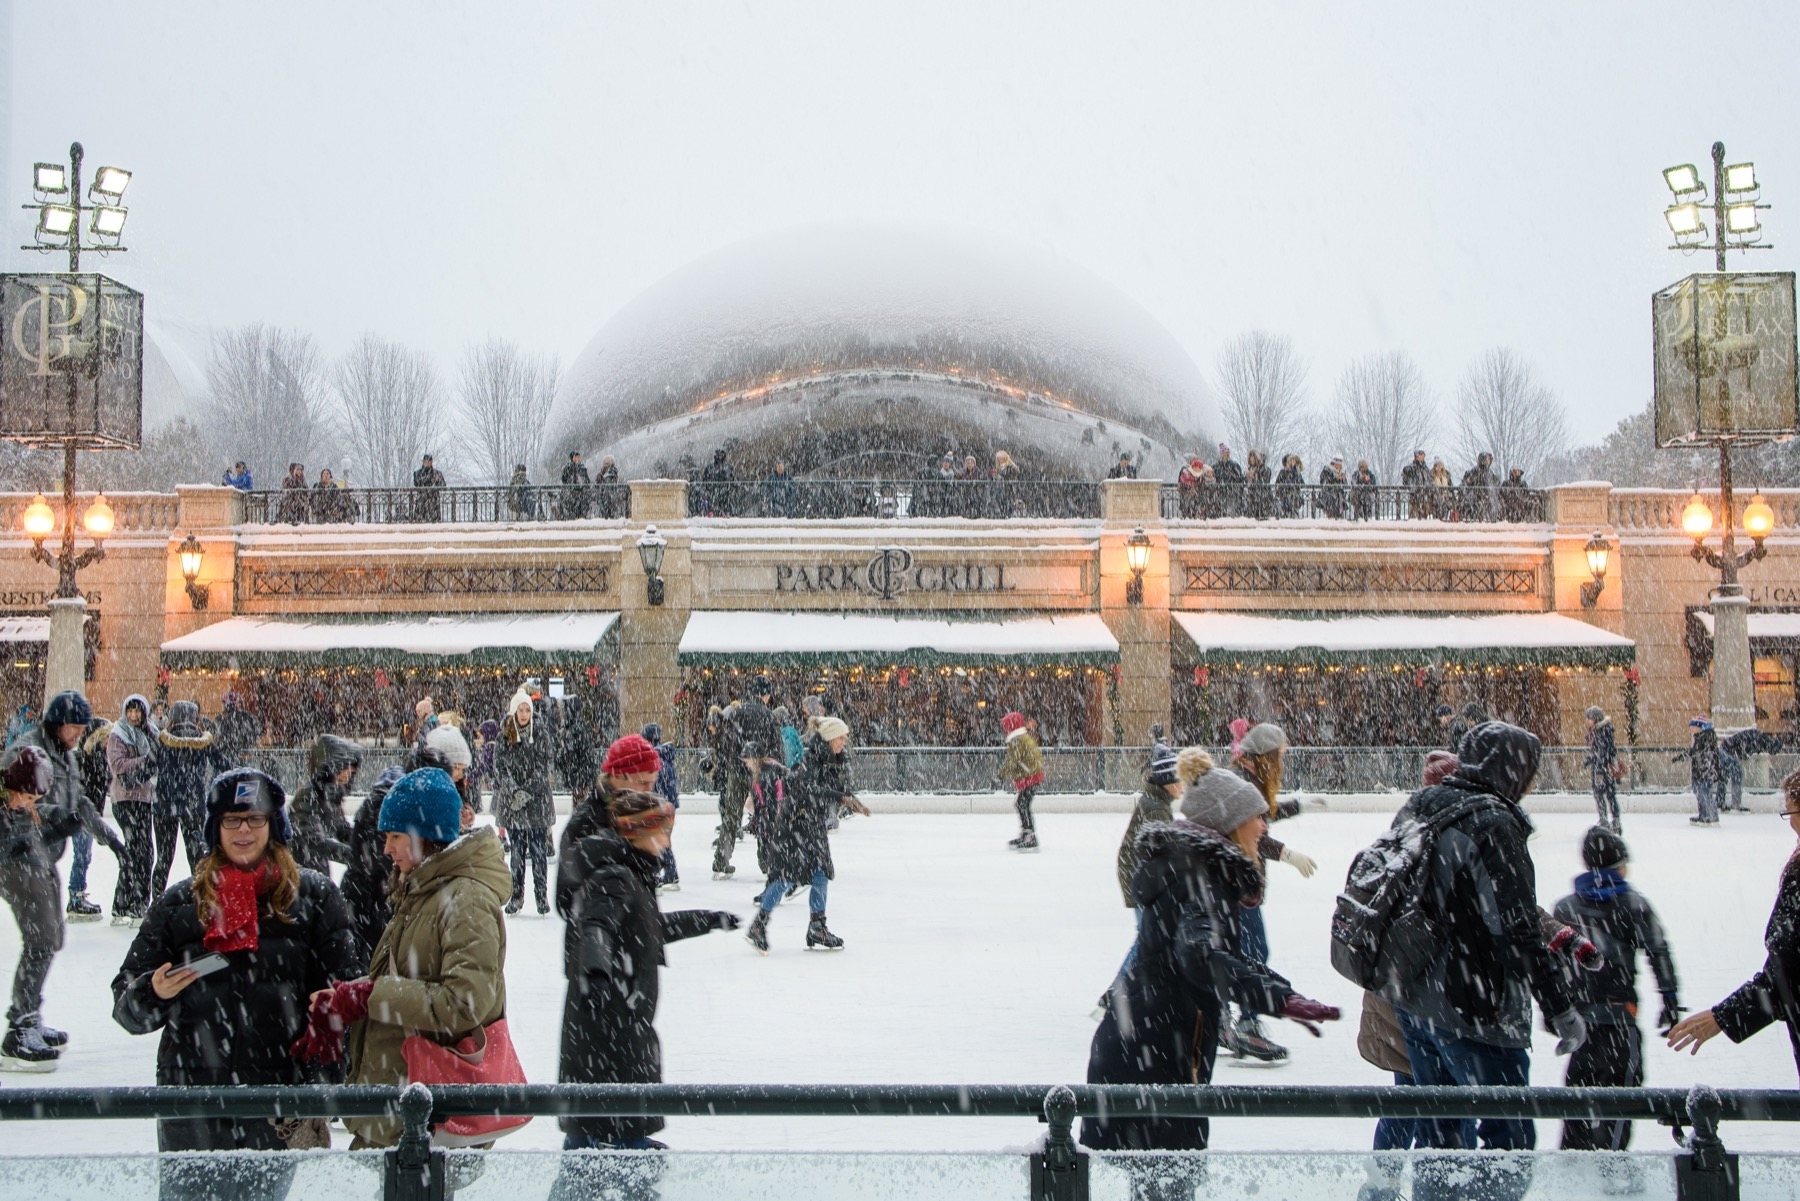 Millennia Park Christmas Tree 2020 Chicago Guide to Winter in Millennium Park | Activities & Events